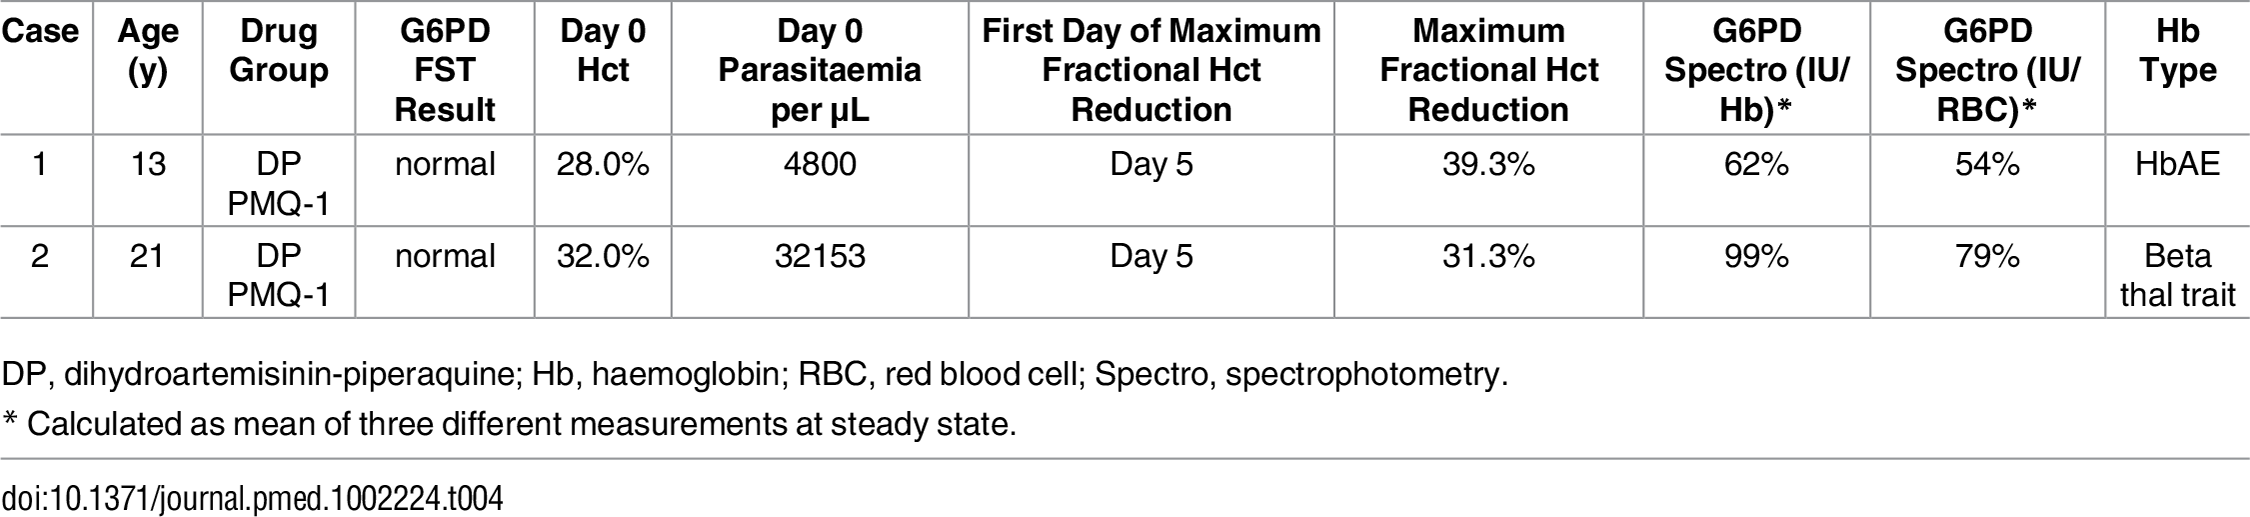 Characteristics of two G6PD heterozygous participants who required transfusion.